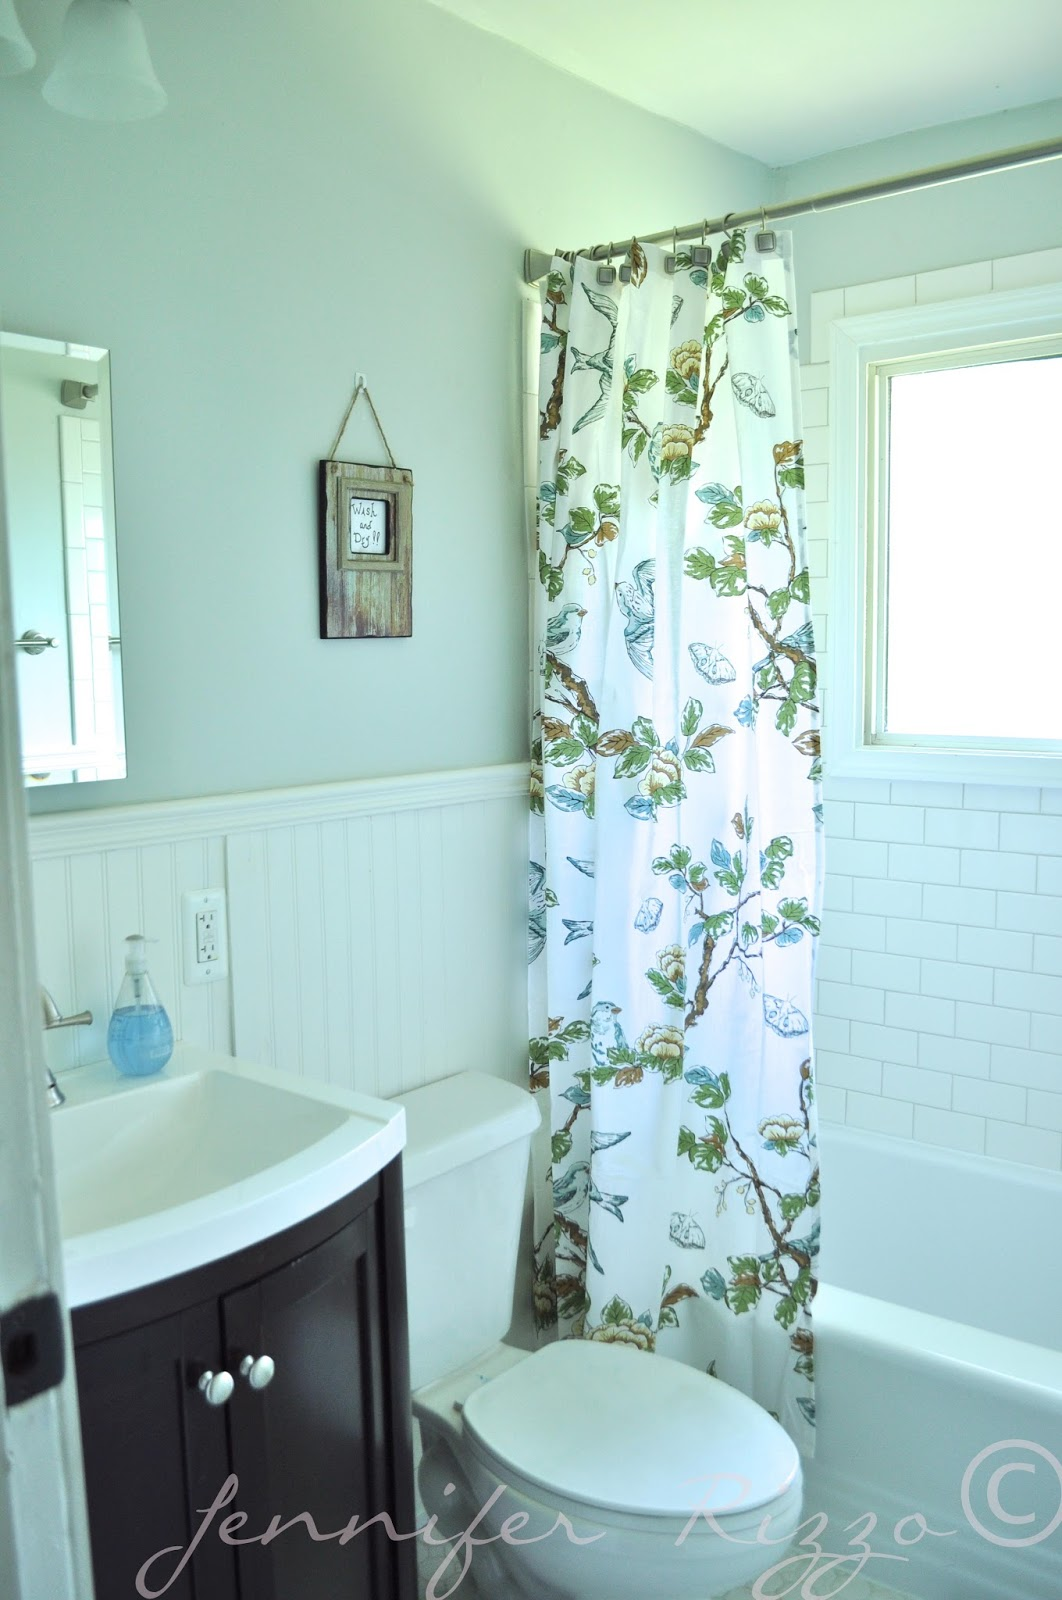 bathroom-wonderful-blue-shade-vintage-bathroom-tile-patterns-in-classic-kitchen-design-ideas-with-floral-pattern-bathtub-drapes-adorable-vintage-bathroom-tile-patterns-for-your-fabulous-bathroom